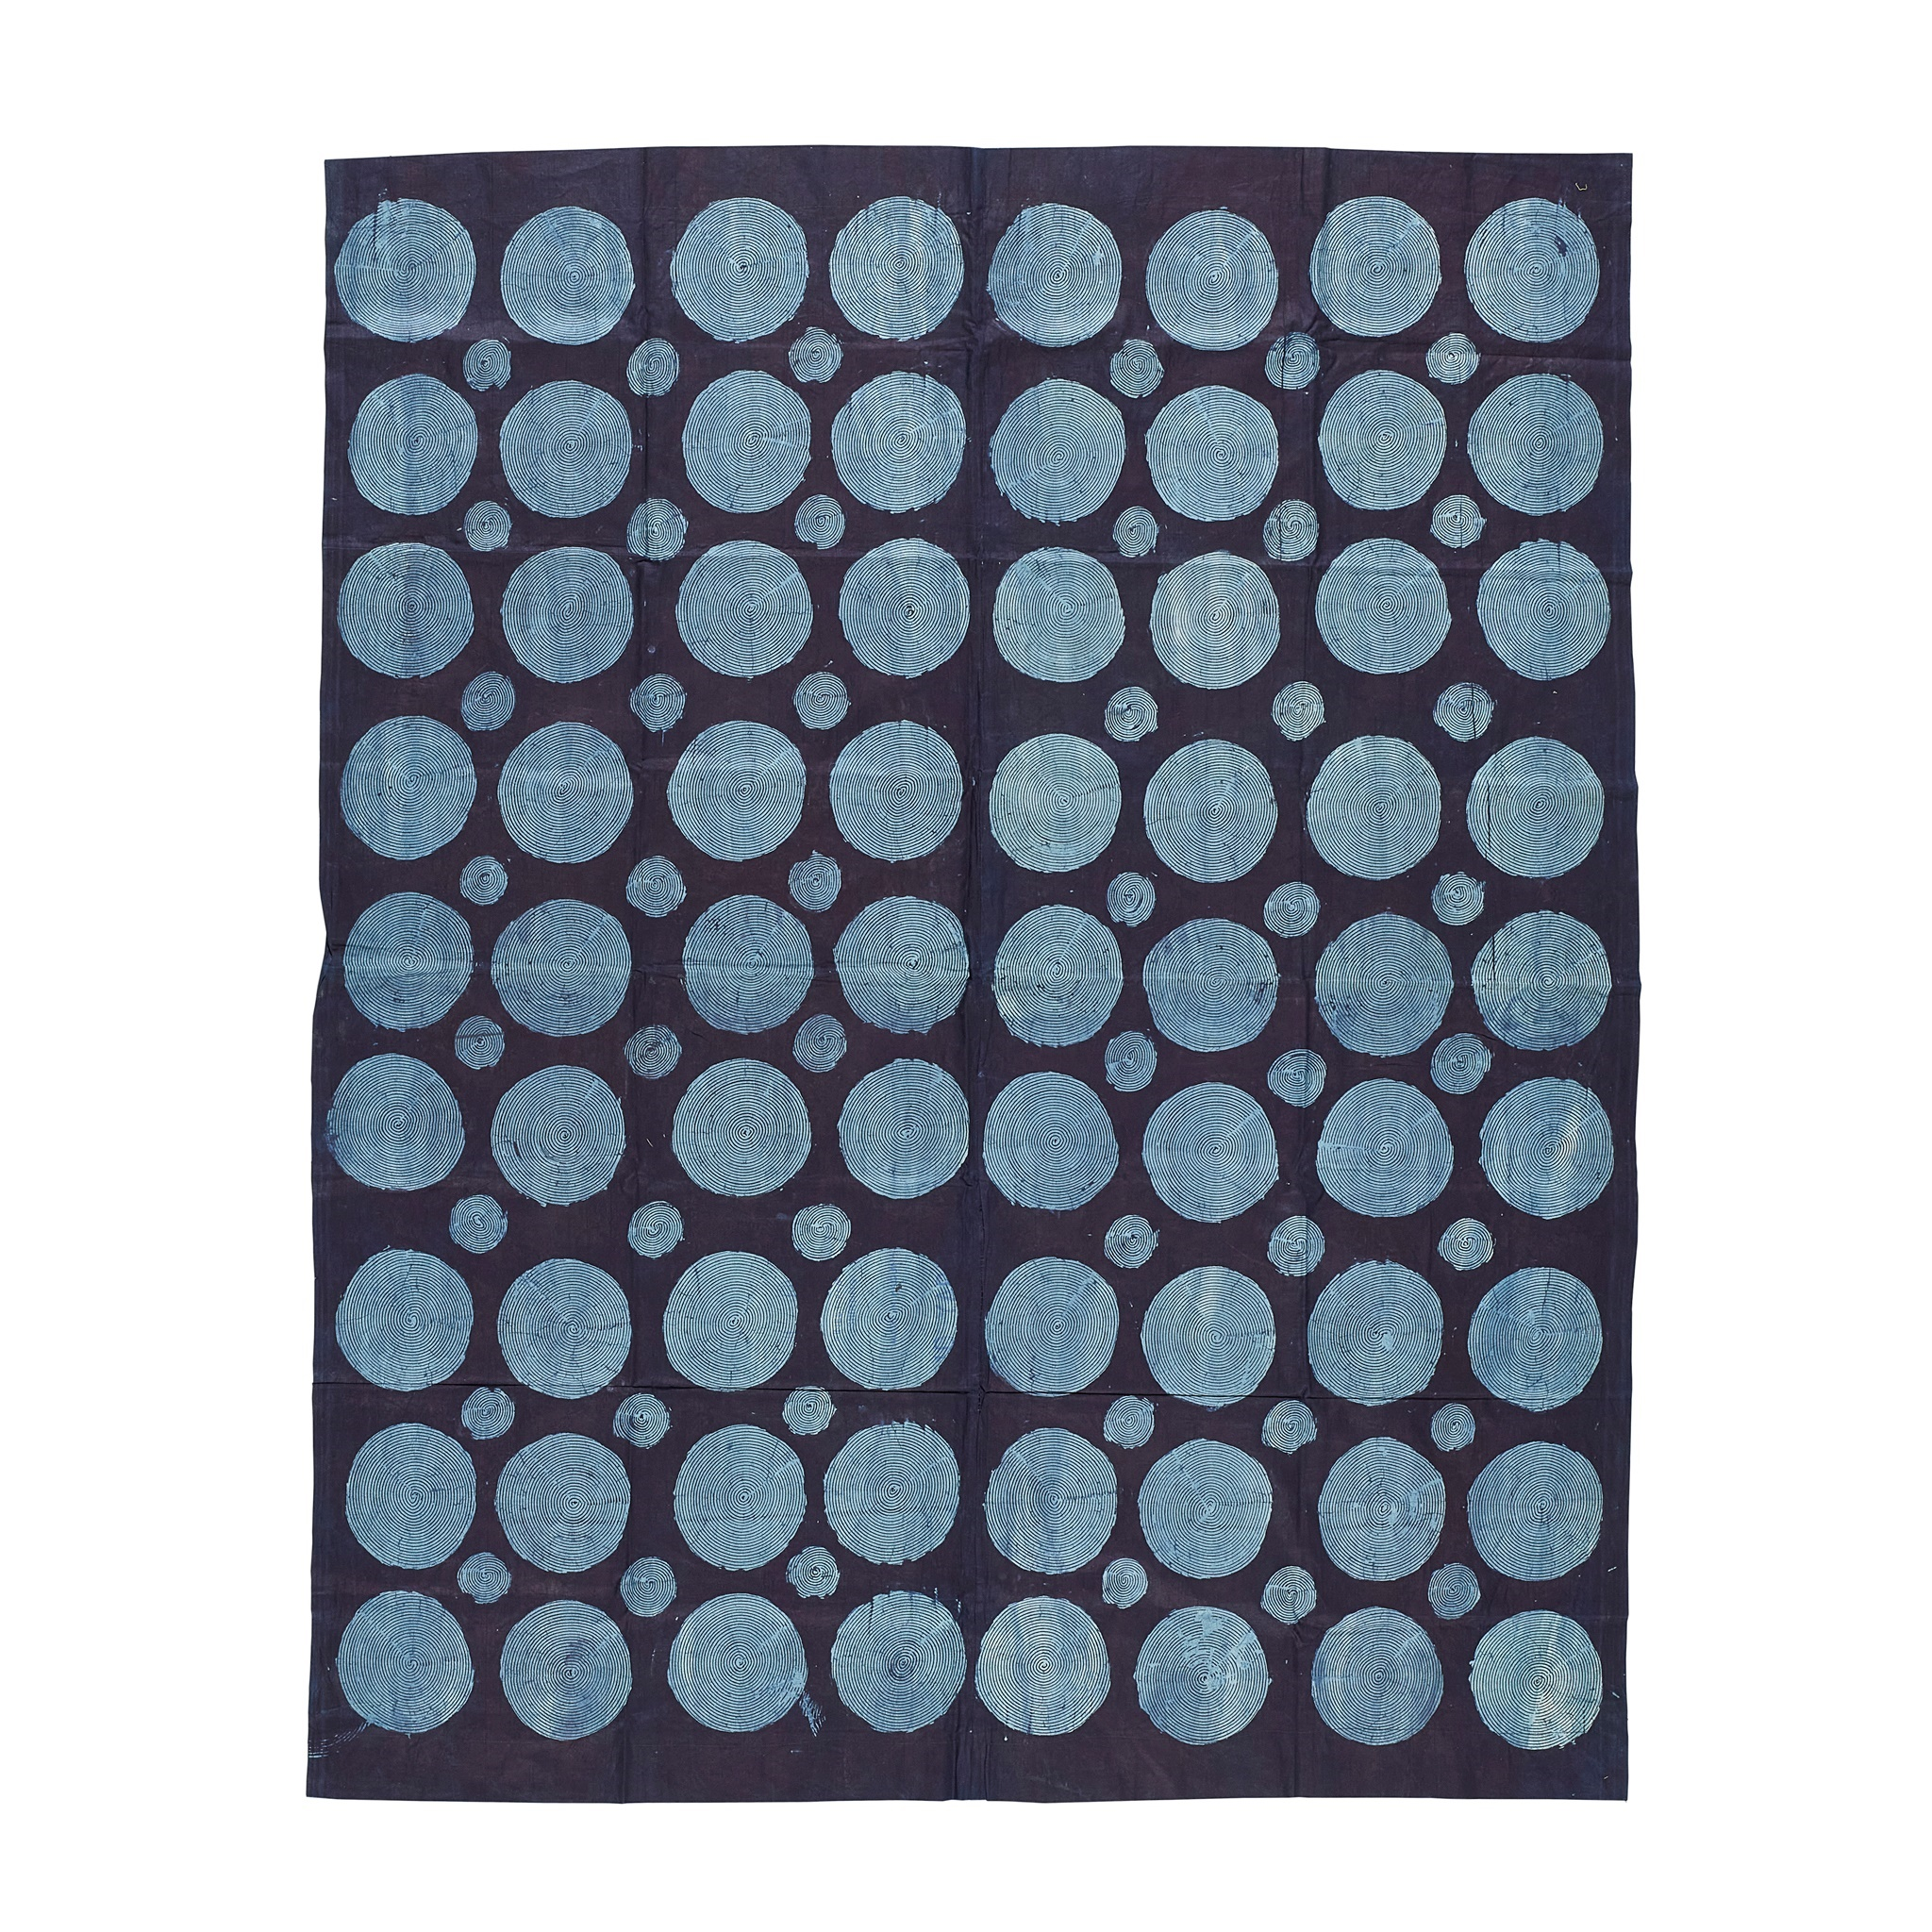 LOT 192 | YORUBA ADIRE TEXTILE | NIGERIA dyed cotton, with rows of light blue circles on a navy ground 204cm x 173cm | Sold for £2,750 + fees Provenance: The Keir McGuinness Collection of African Textiles